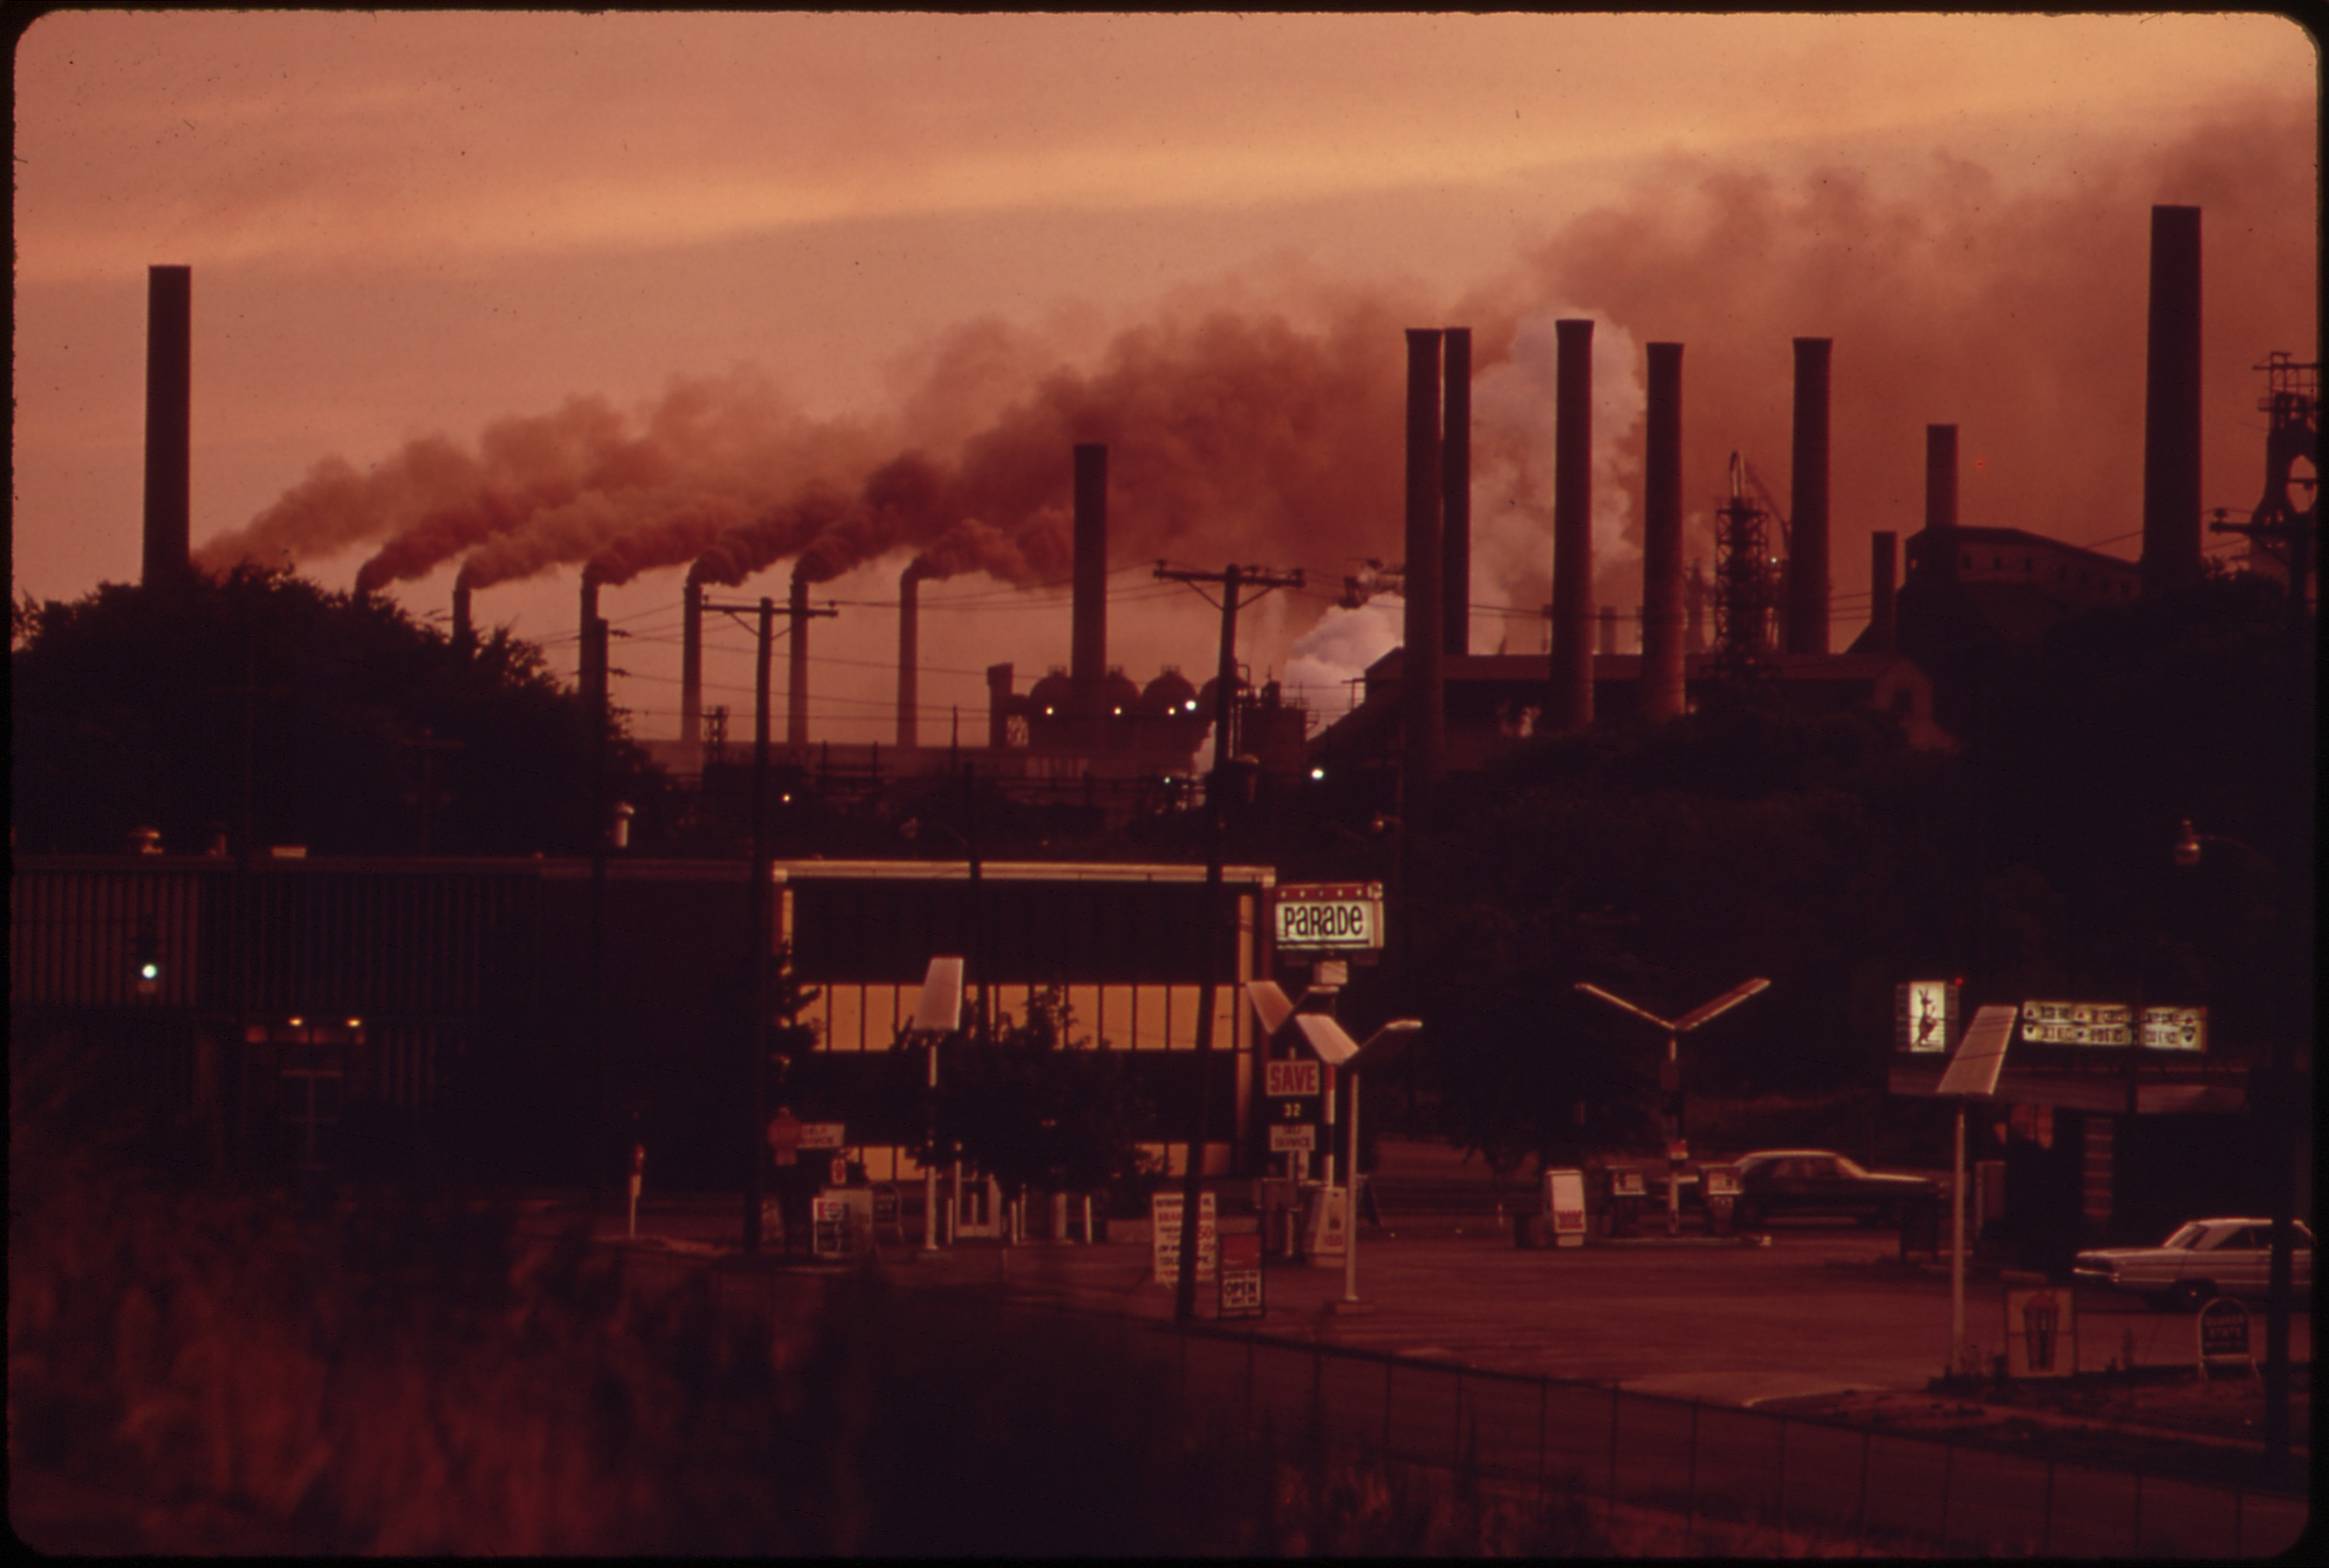 File:FAIRFIELD PLANT OF U S  STEEL OPERATES 24 HOURS A DAY